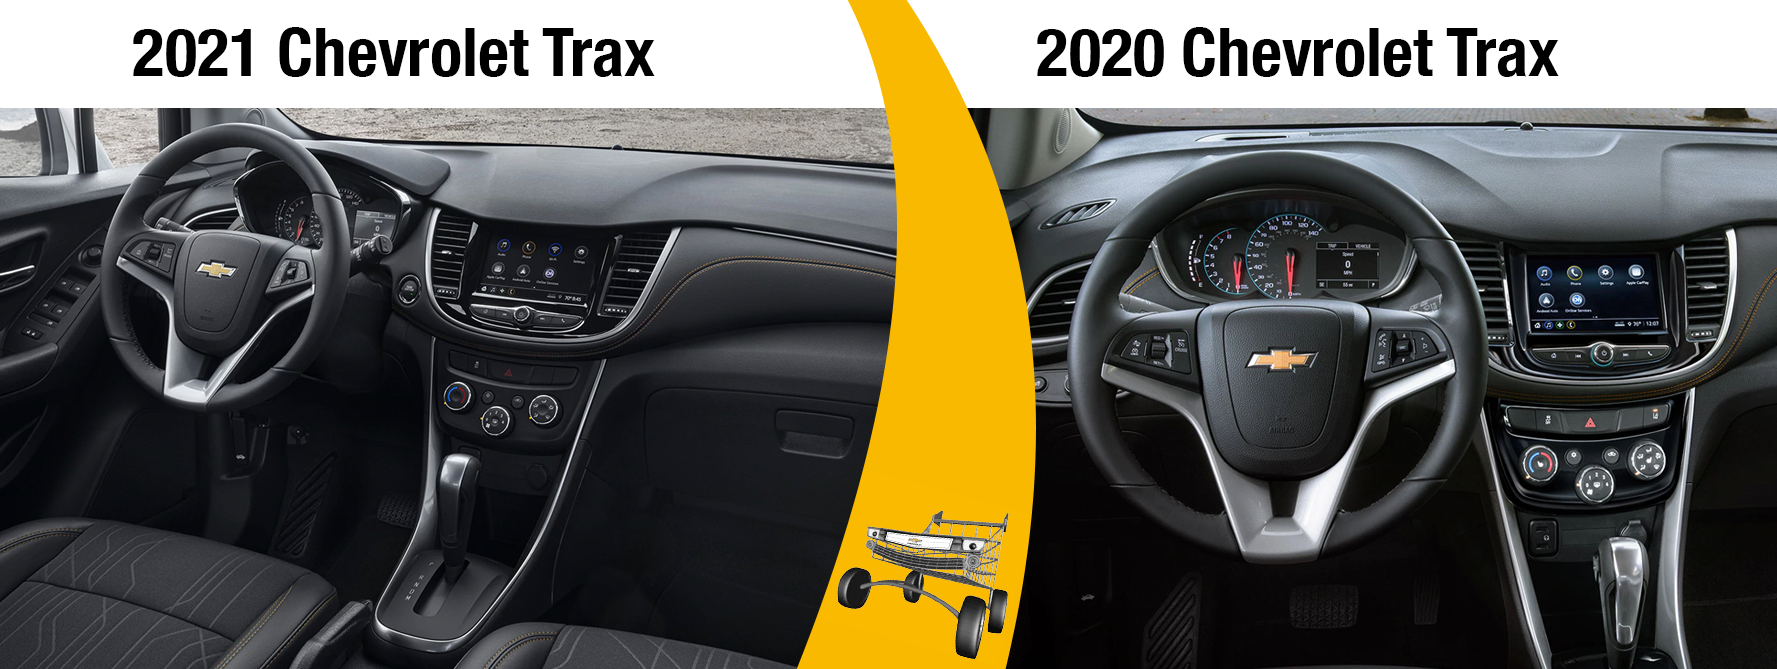 2021 Trax vs 2020 Trax Technology Features